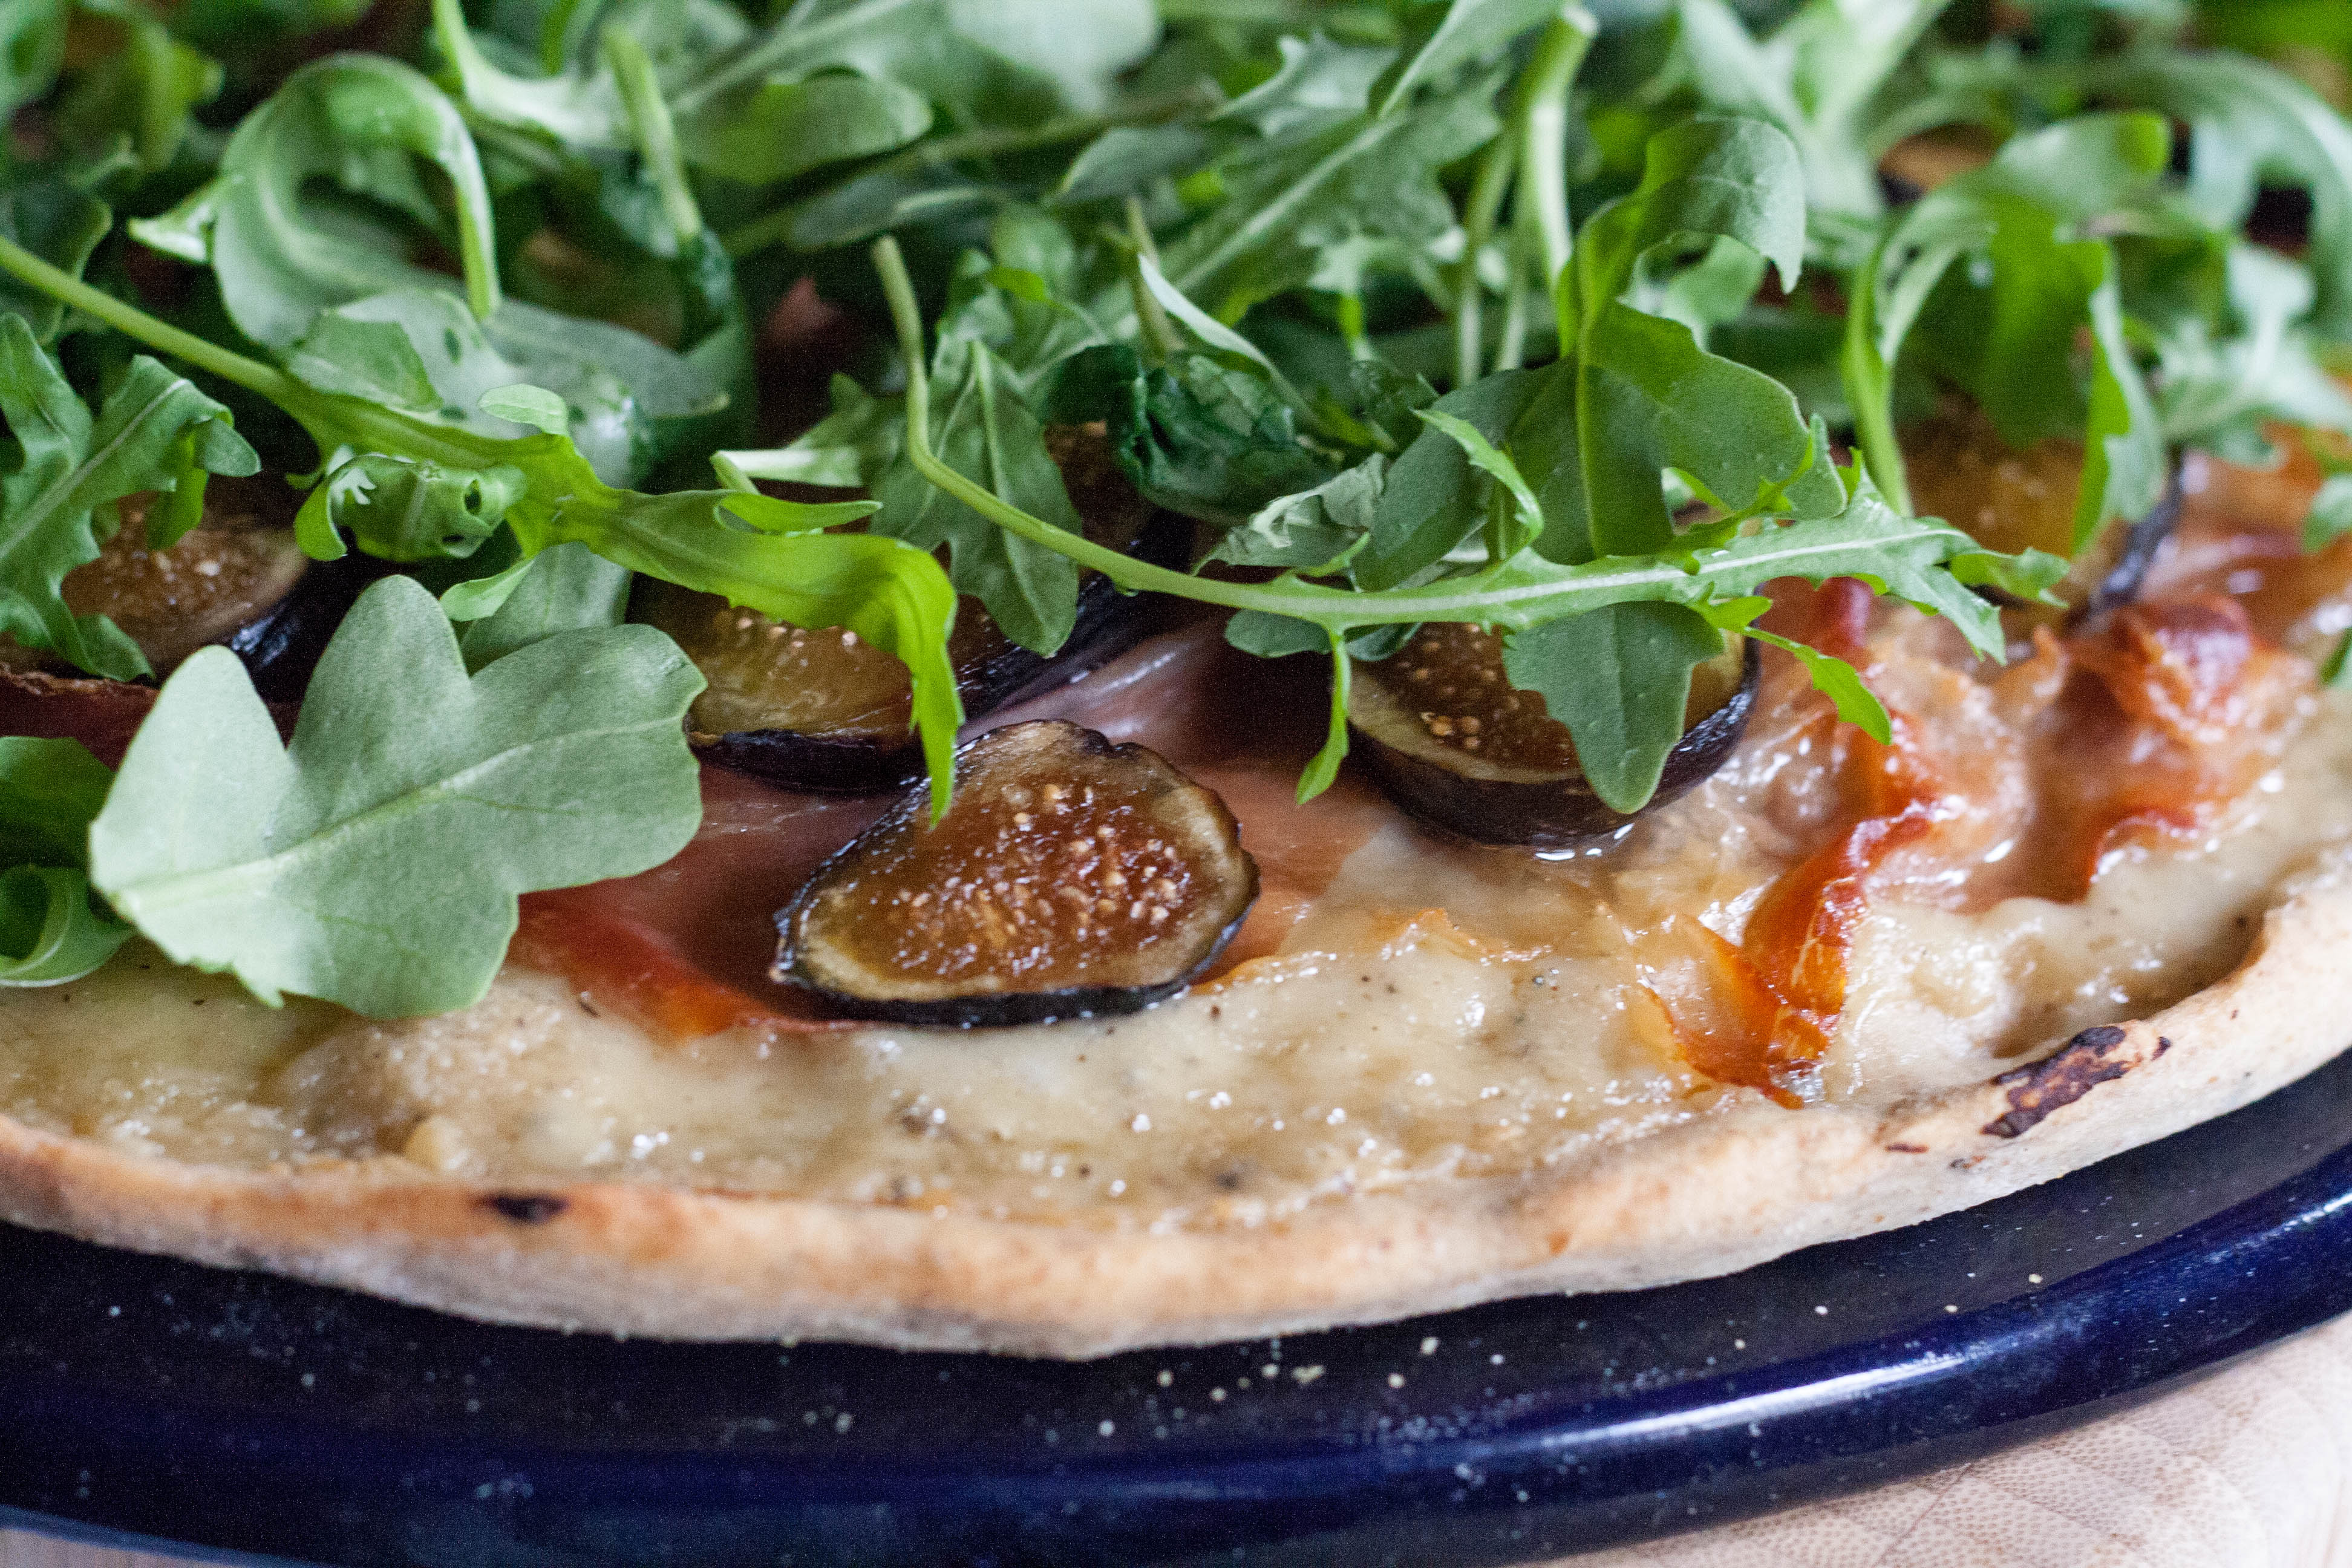 Fig and Prosciutto Pizza with Arugula topped